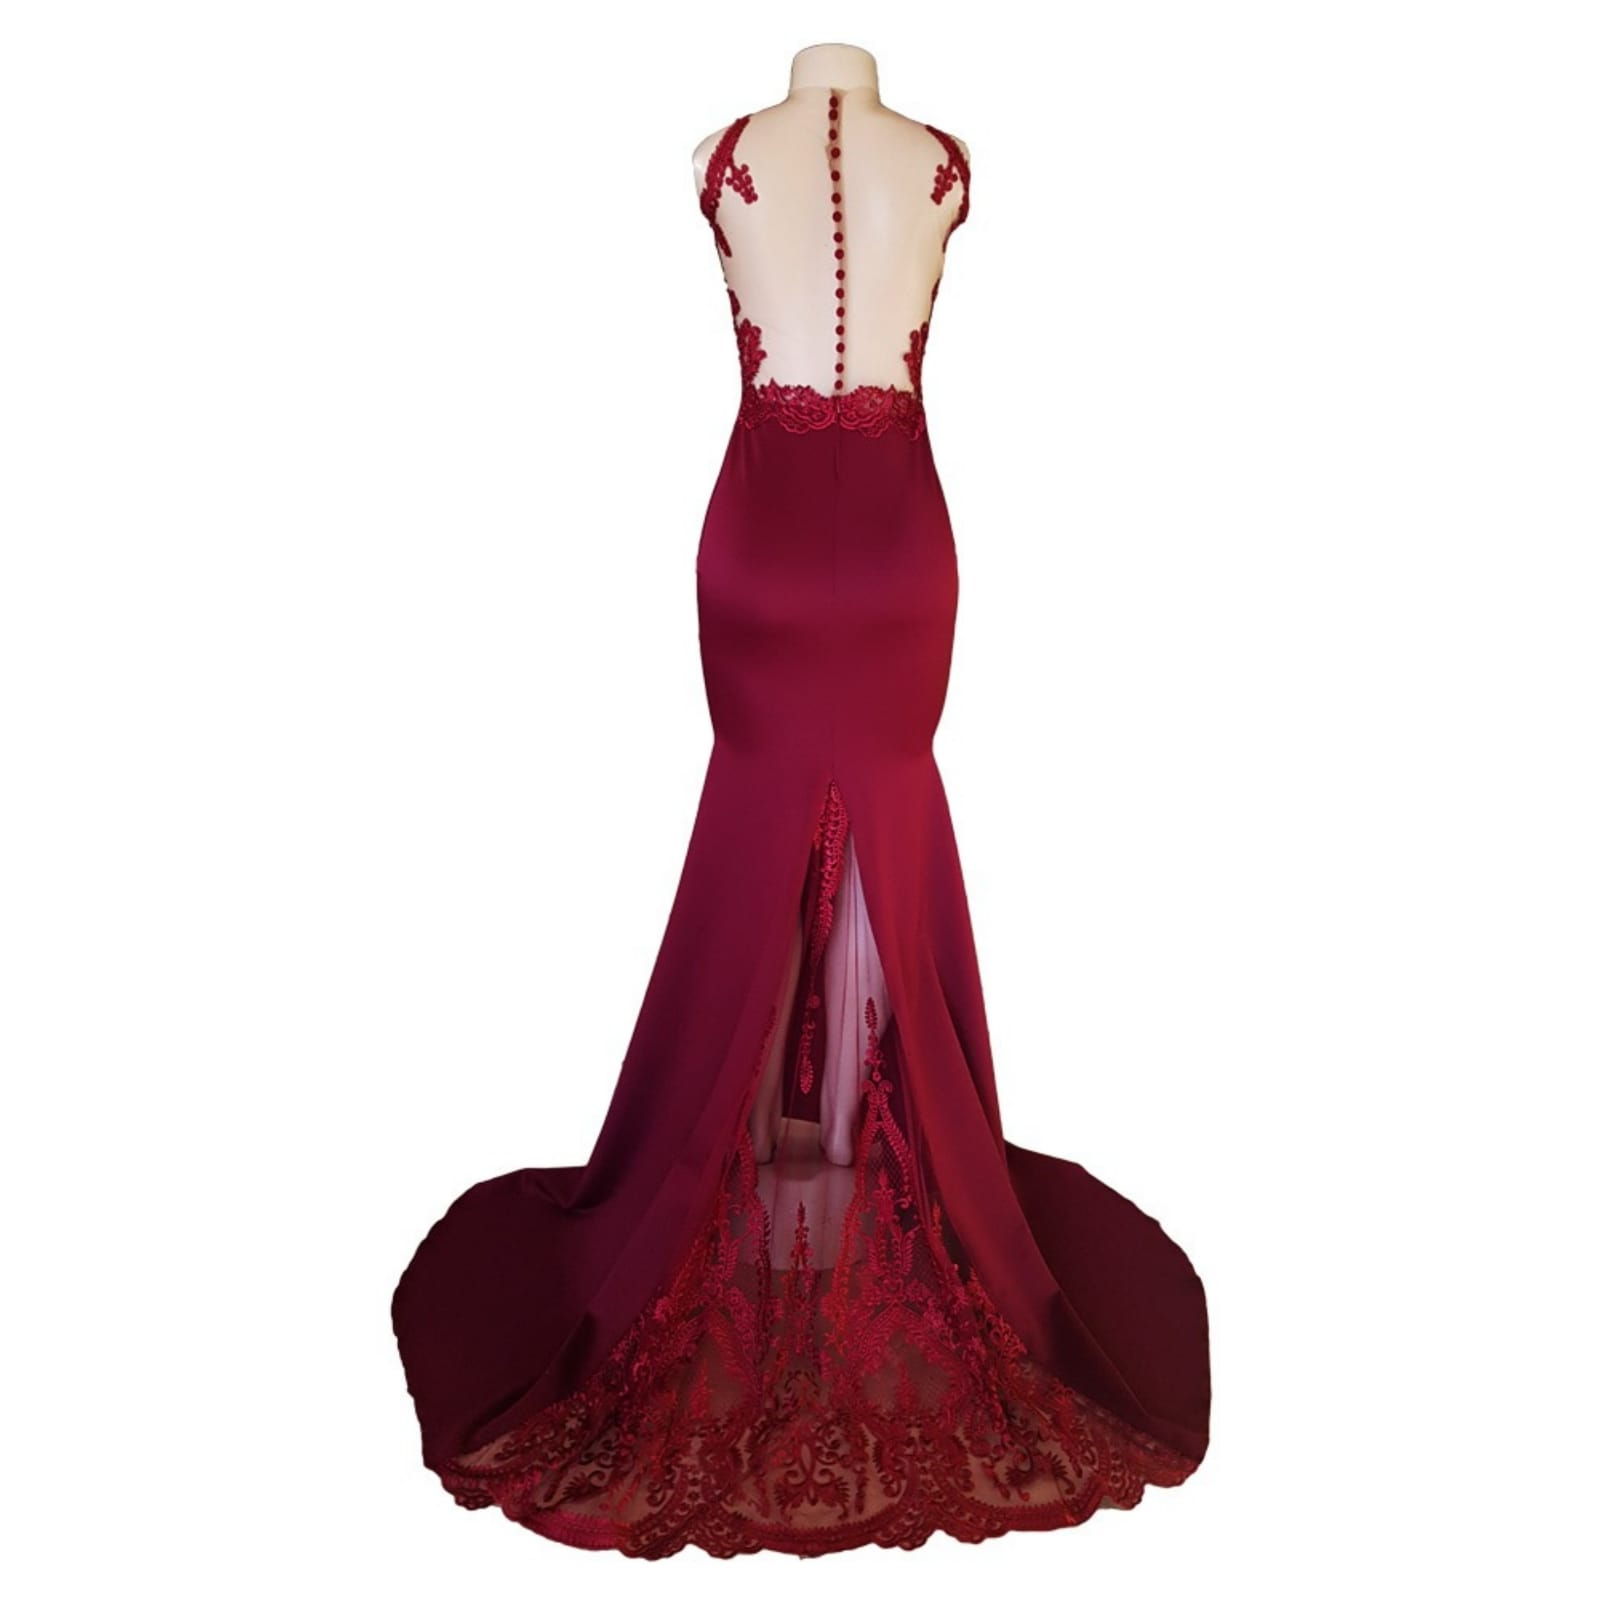 Maroon soft mermaid matric dance dress 7 maroon soft mermaid matric dance dress created to make celine look glorious in her special night. With a sheer lace train that hooks up on the side, a naked illusion back with button and lace detail adding a touch of sensuality and elegance to her look.